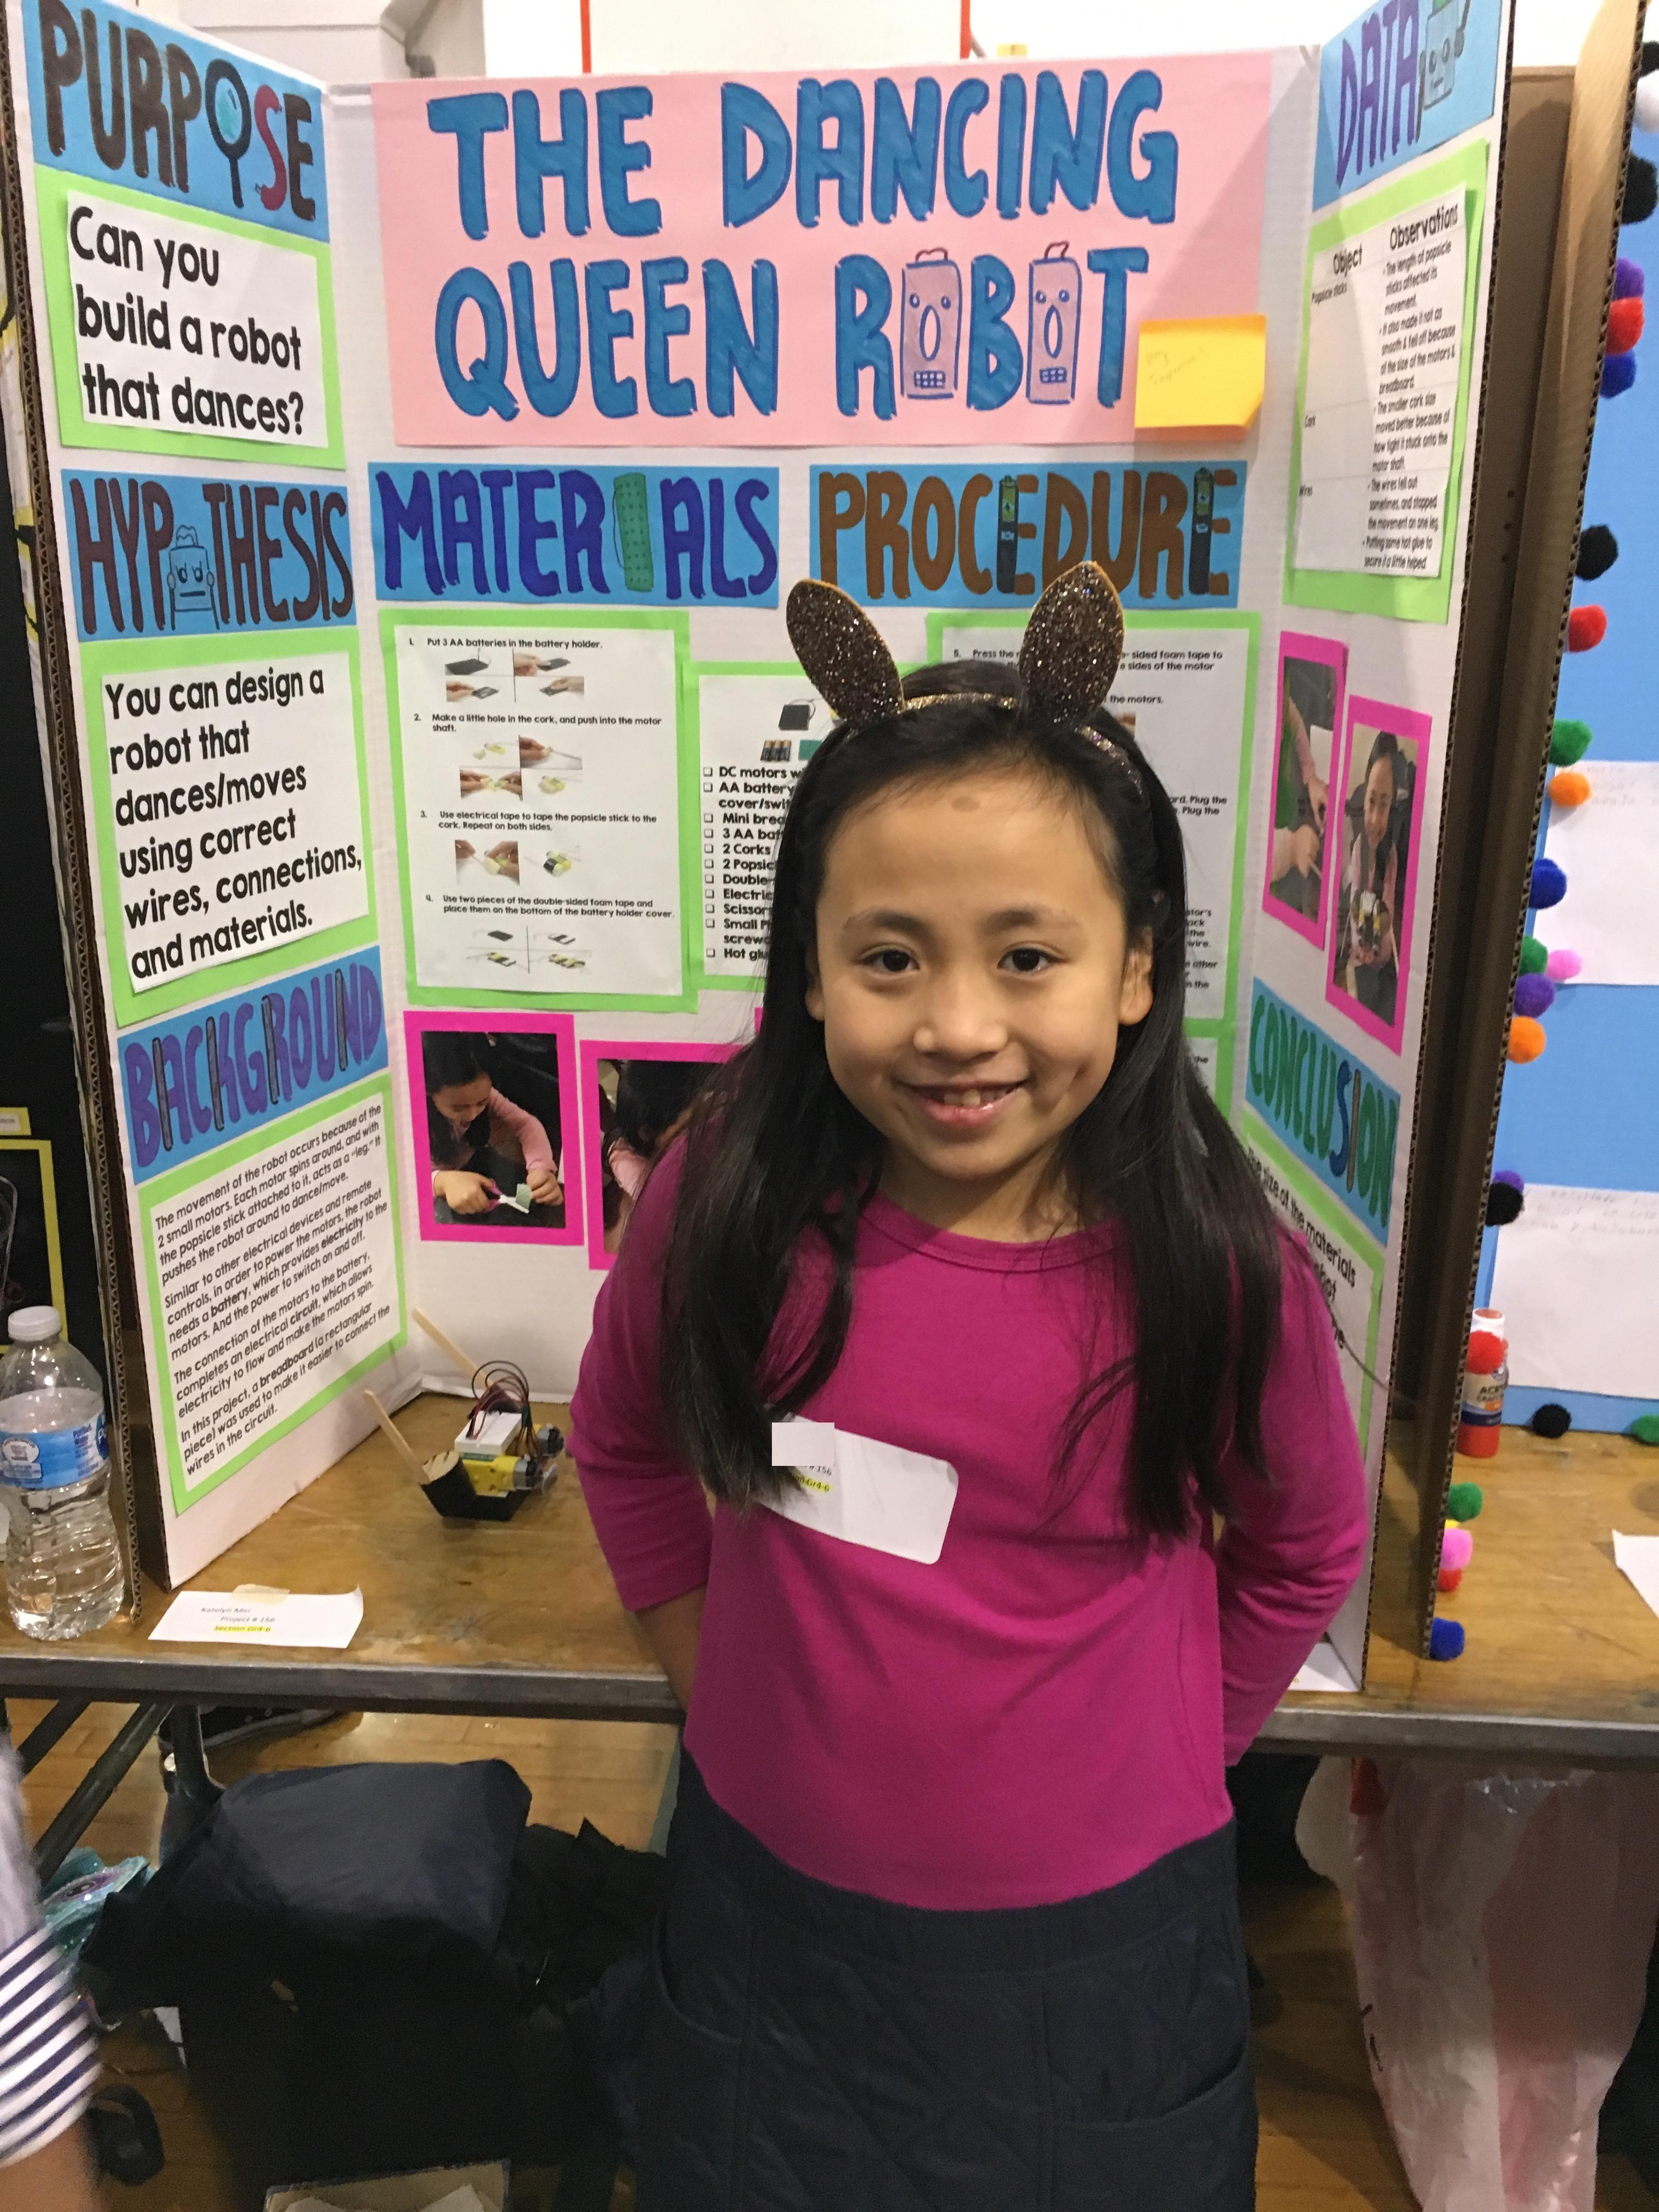 jefferson female student with her dancing queen robot research